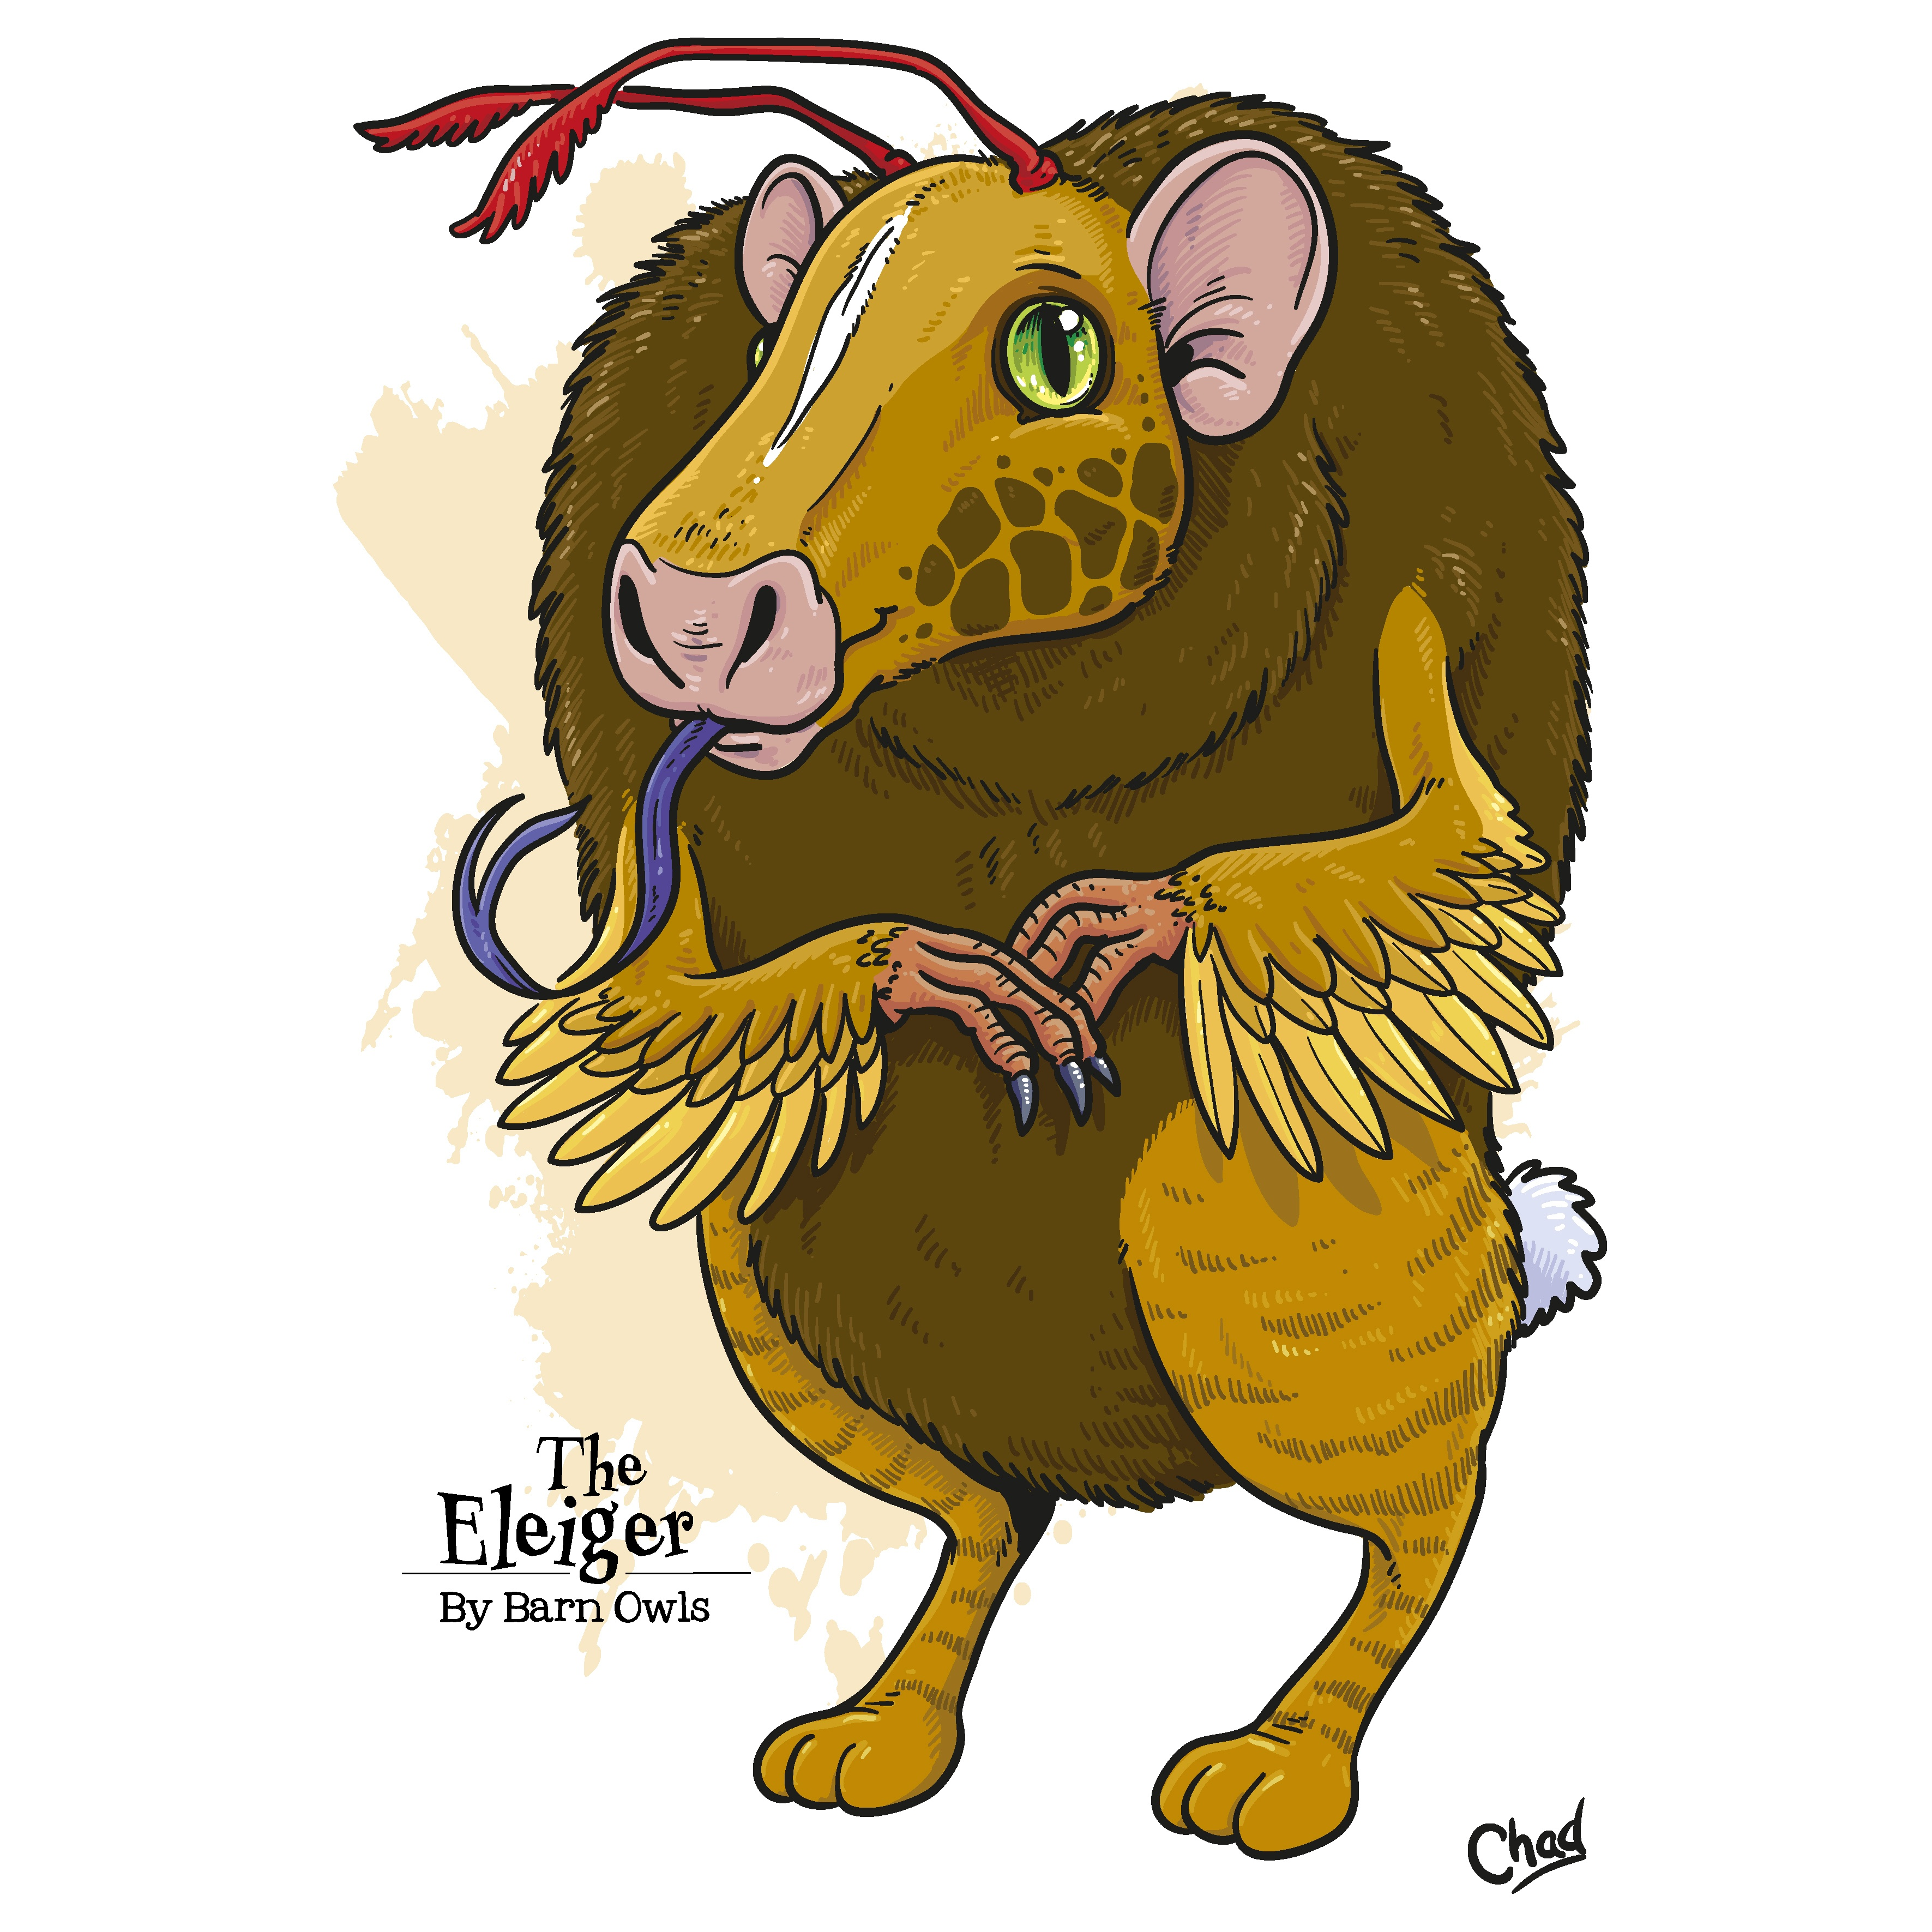 The Eleiger, drawn by Simon Chadwick